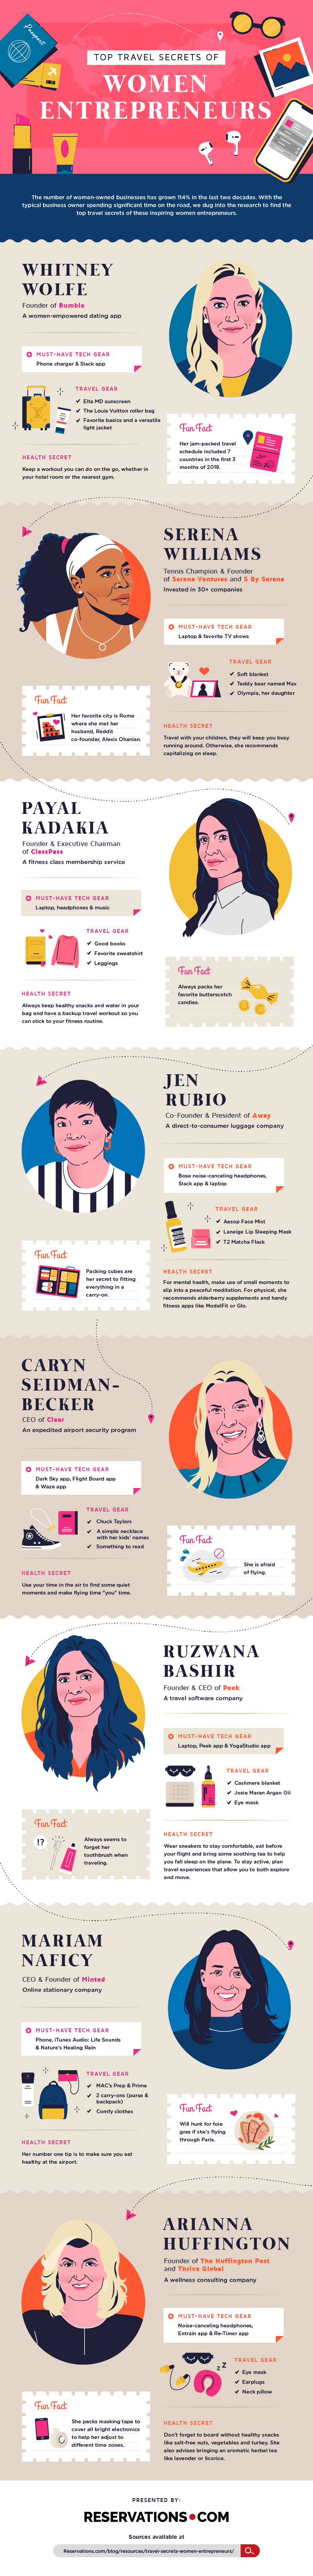 Top Travel Secrets of Women Entrepreneurs